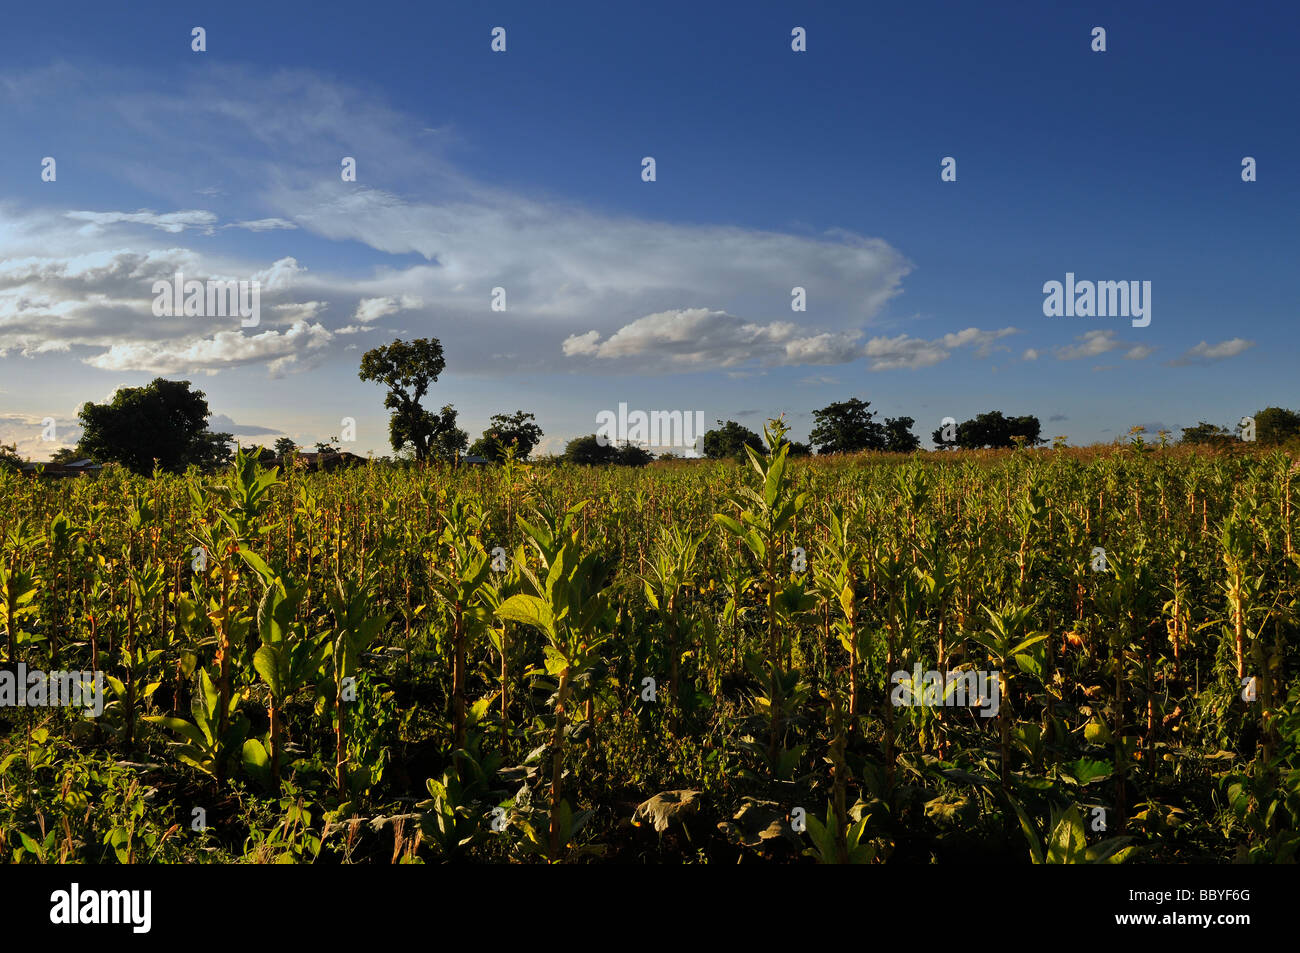 Tobacco plantation in Malawi Africa - Stock Image